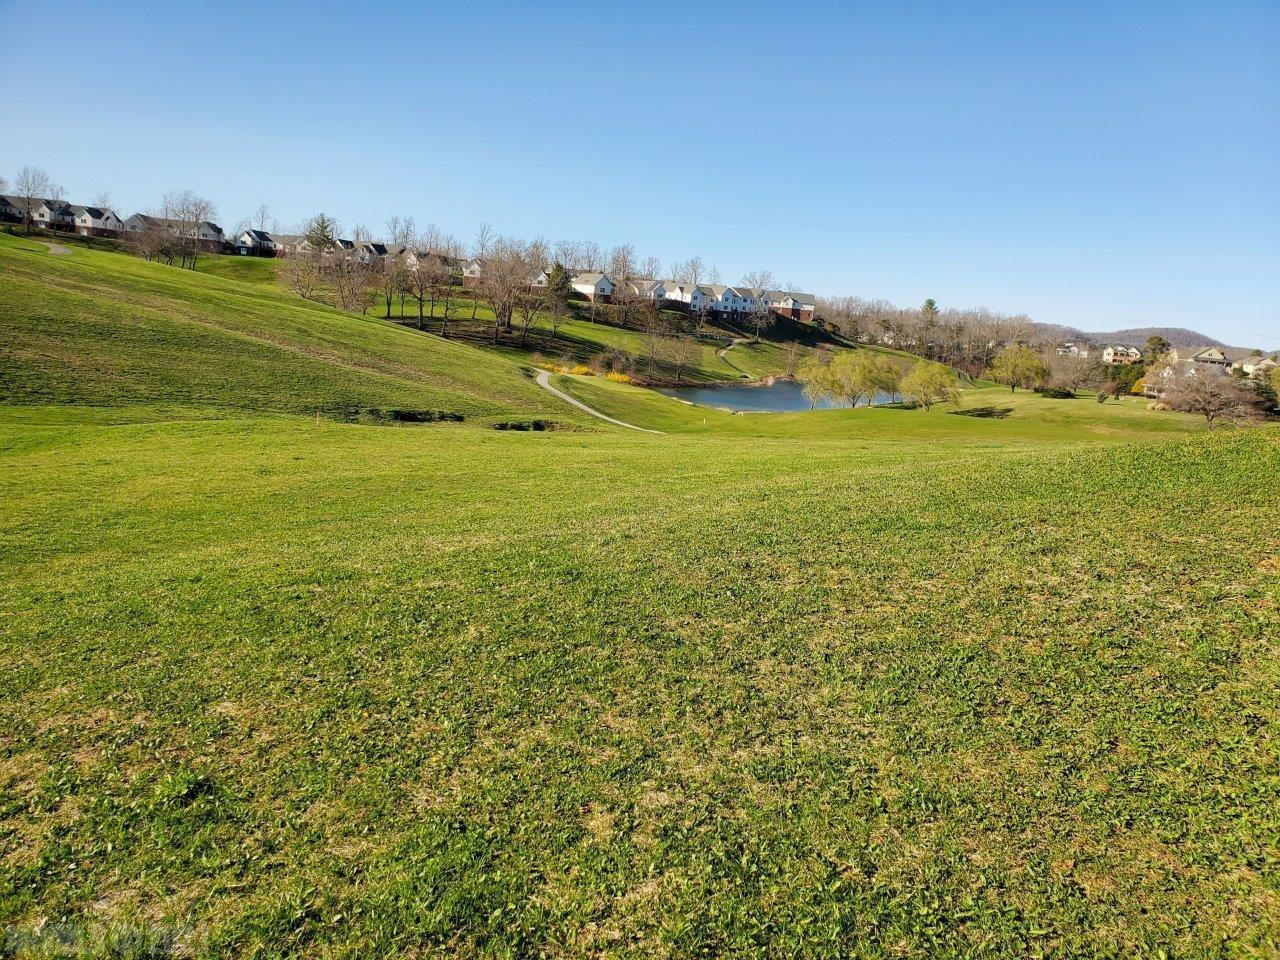 Owner Financing Available. Enjoy the beautiful view over the 18th hole at Auburn Hills Golf Club that this fabulous lot offers. Build your dream house and be a part of this great Auburn Hills development. Water and sewer available. Close to Blacksburg, Christiansburg, Radford and Carilion Medical. No HOA. Call today.